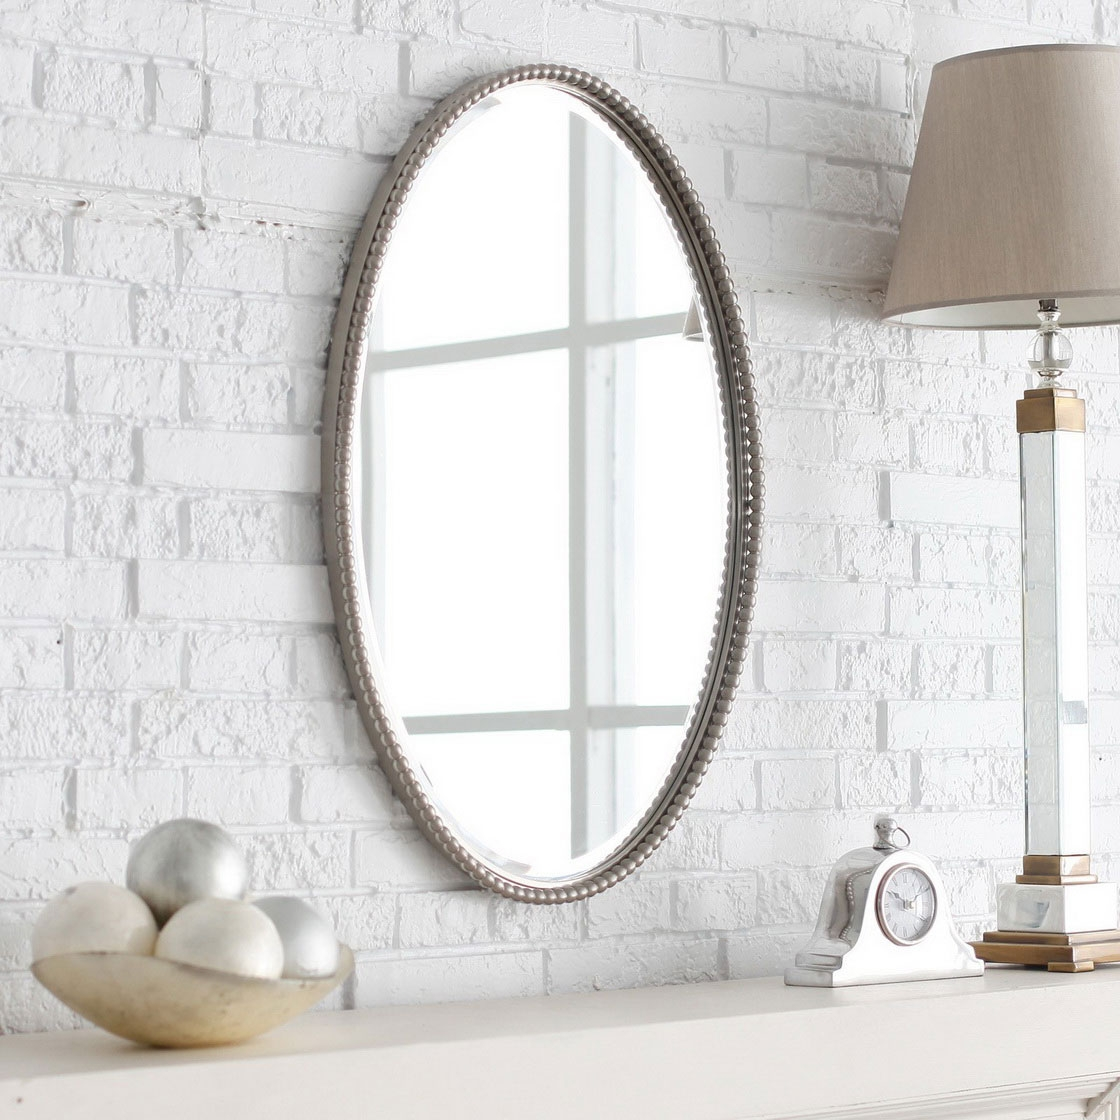 Large oval mirrors for walls choice image home wall decoration ideas mirror wooden oval mirror frames beautiful oval mirrors for full size of mirrorwooden oval mirror frames beautiful oval mirrors for walls gray wall large amipublicfo Gallery